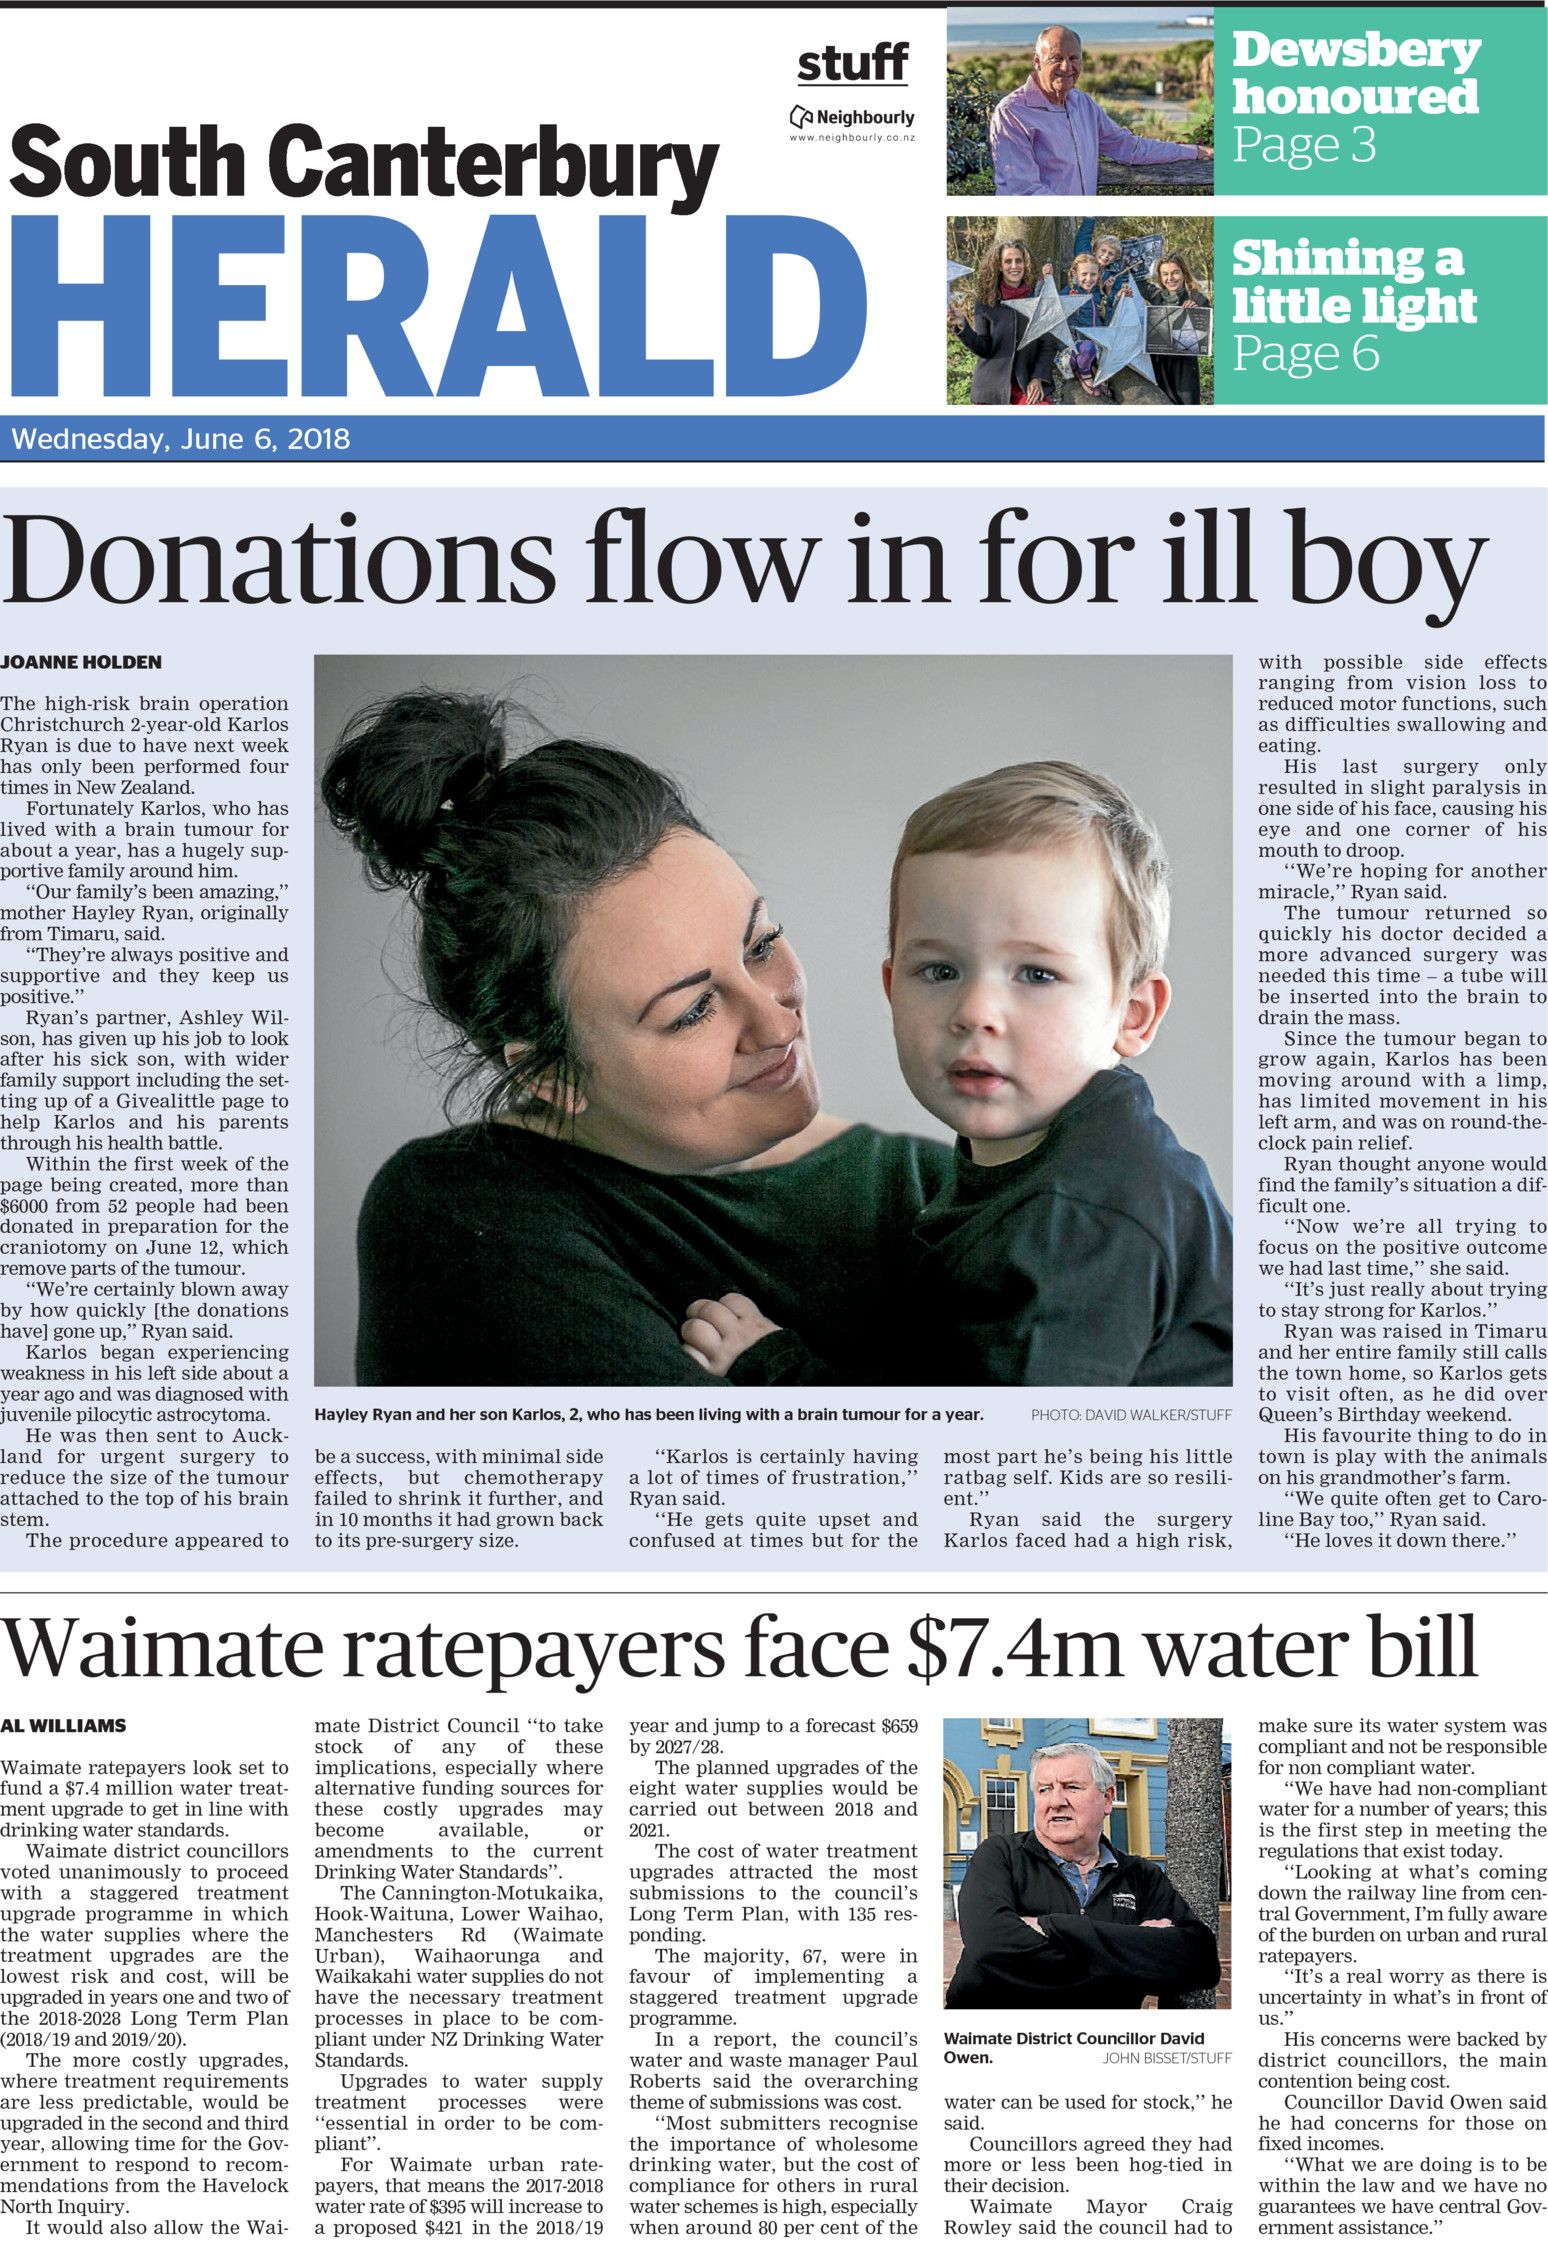 South Canterbury Herald - Read online on Neighbourly